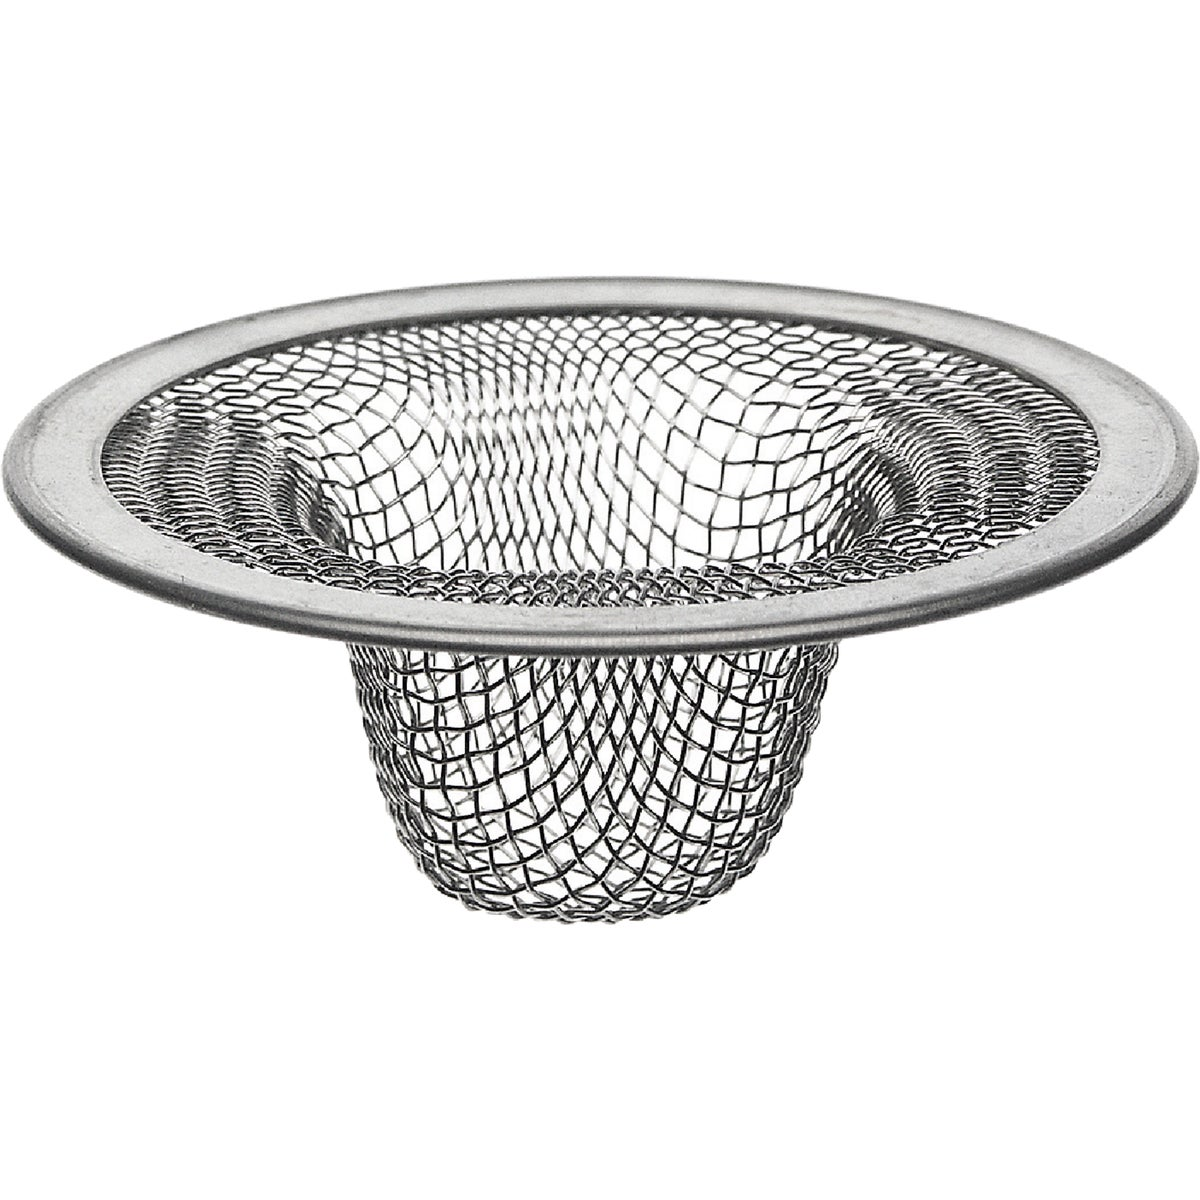 """2-1/2"""" SS LAV STRAINER - 88820 by Danco Perfect Match"""